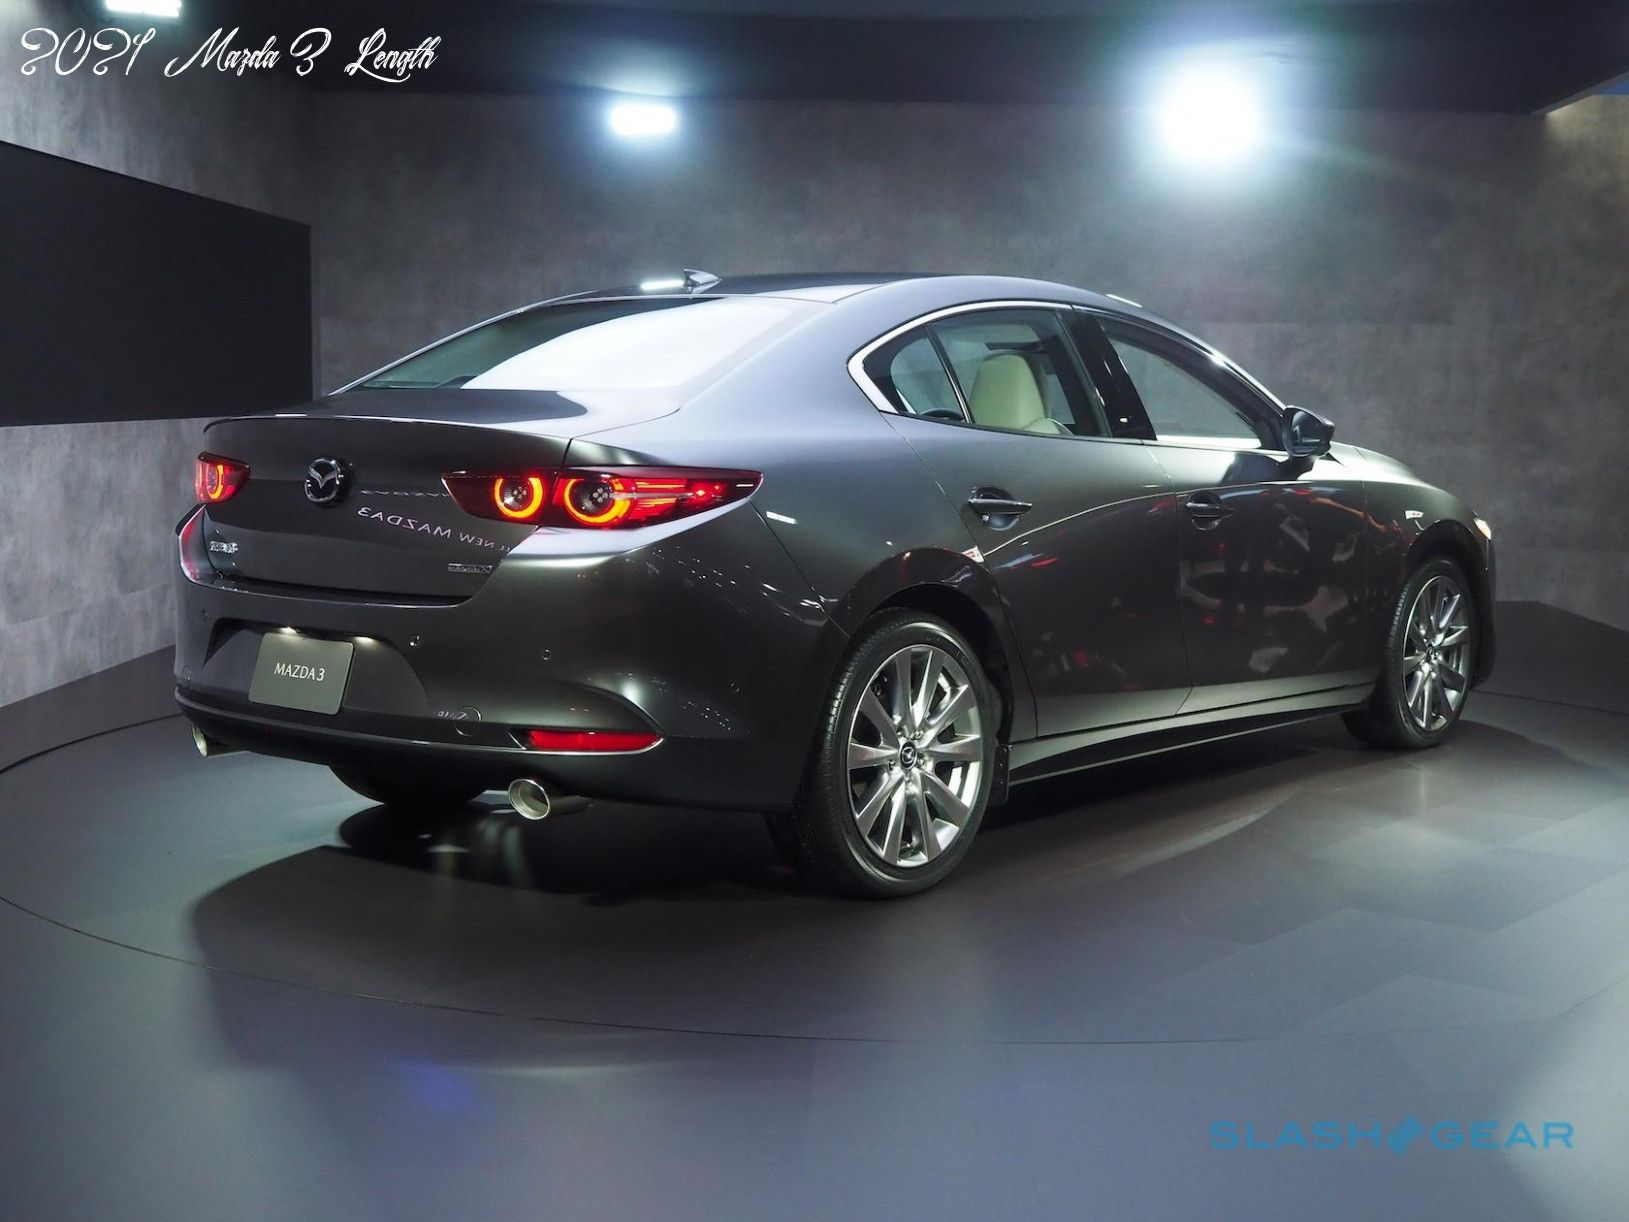 2021 Mazda 3 Length Research New in 2020 Mazda, Mazda 3